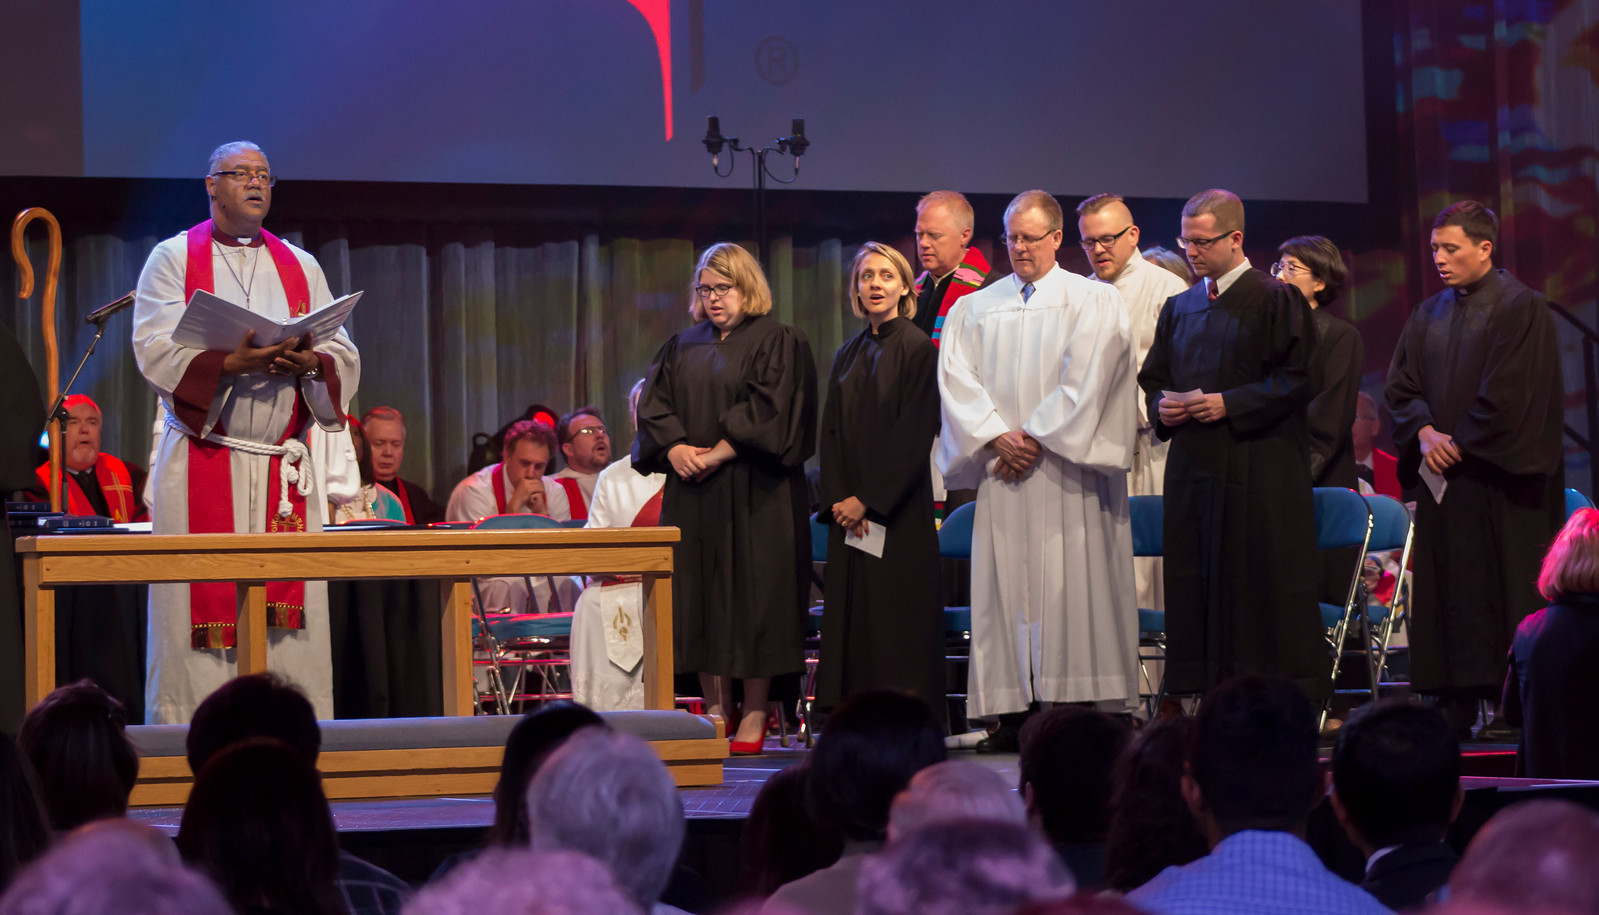 The Commissioning and Ordination Service at the 2017 INUMC Annual Conference in Indianapolis.